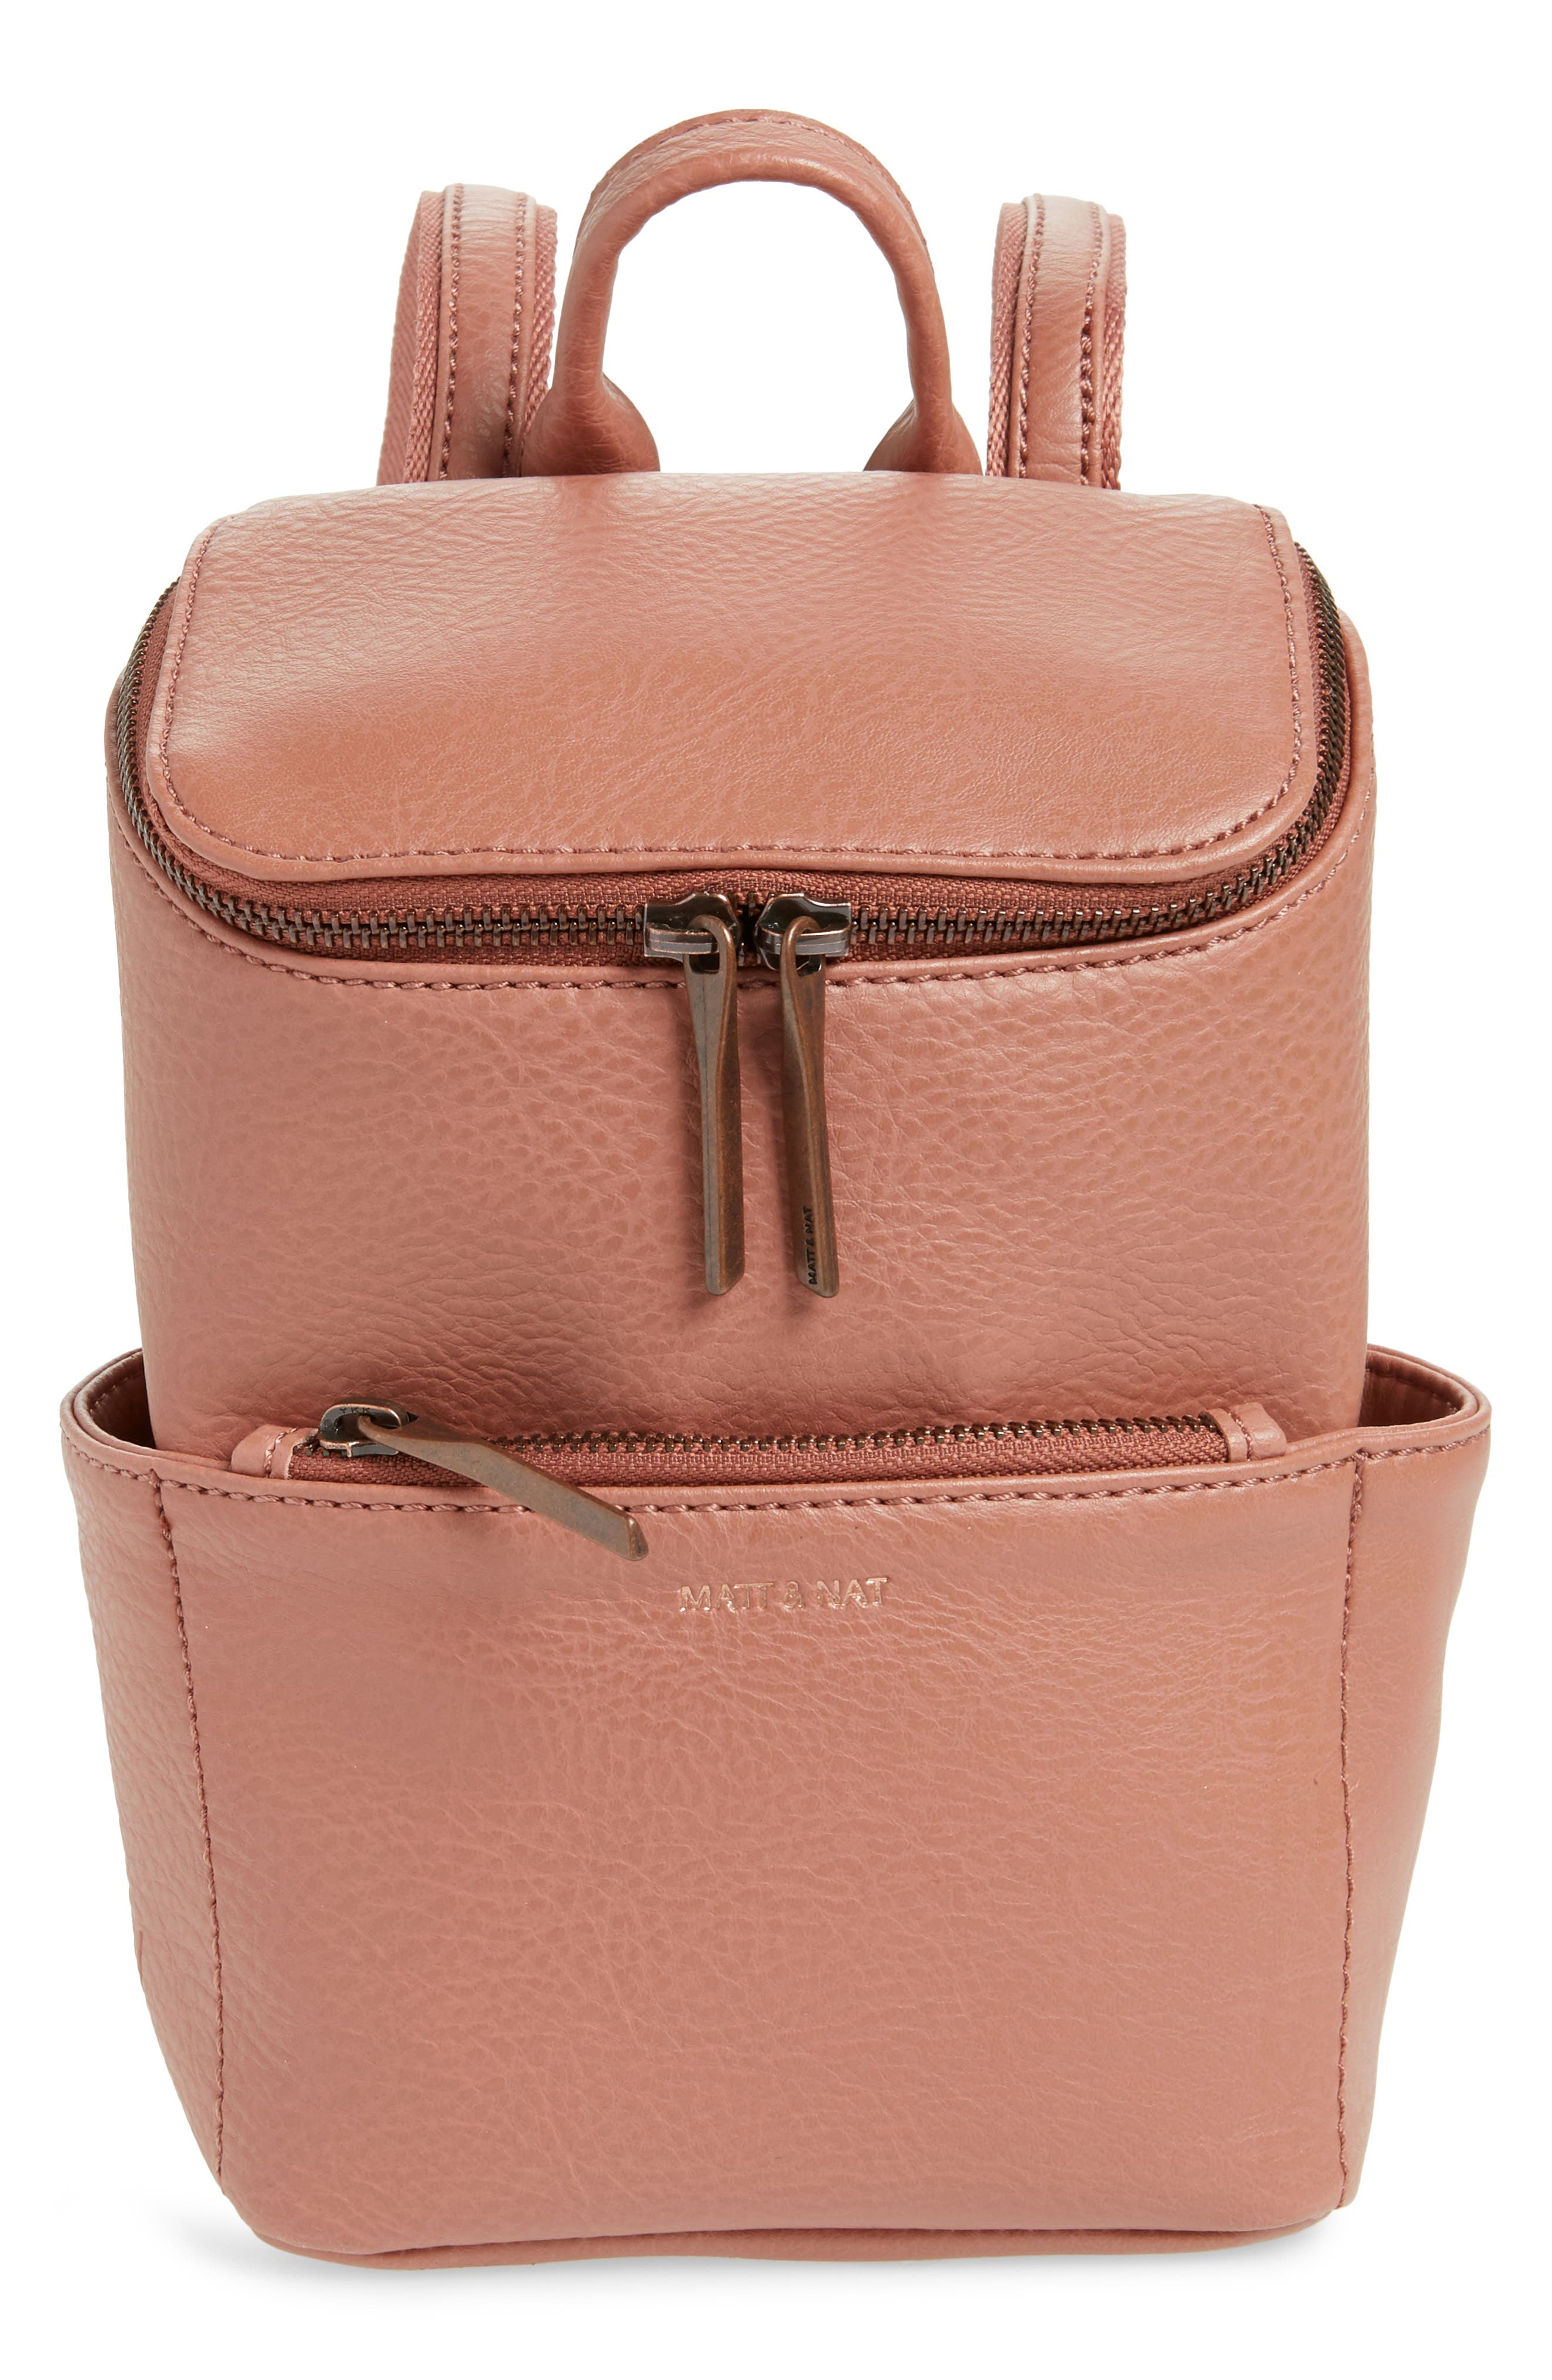 MATT & NAT Mini Brave Faux Leather Backpack - Pink in Clay